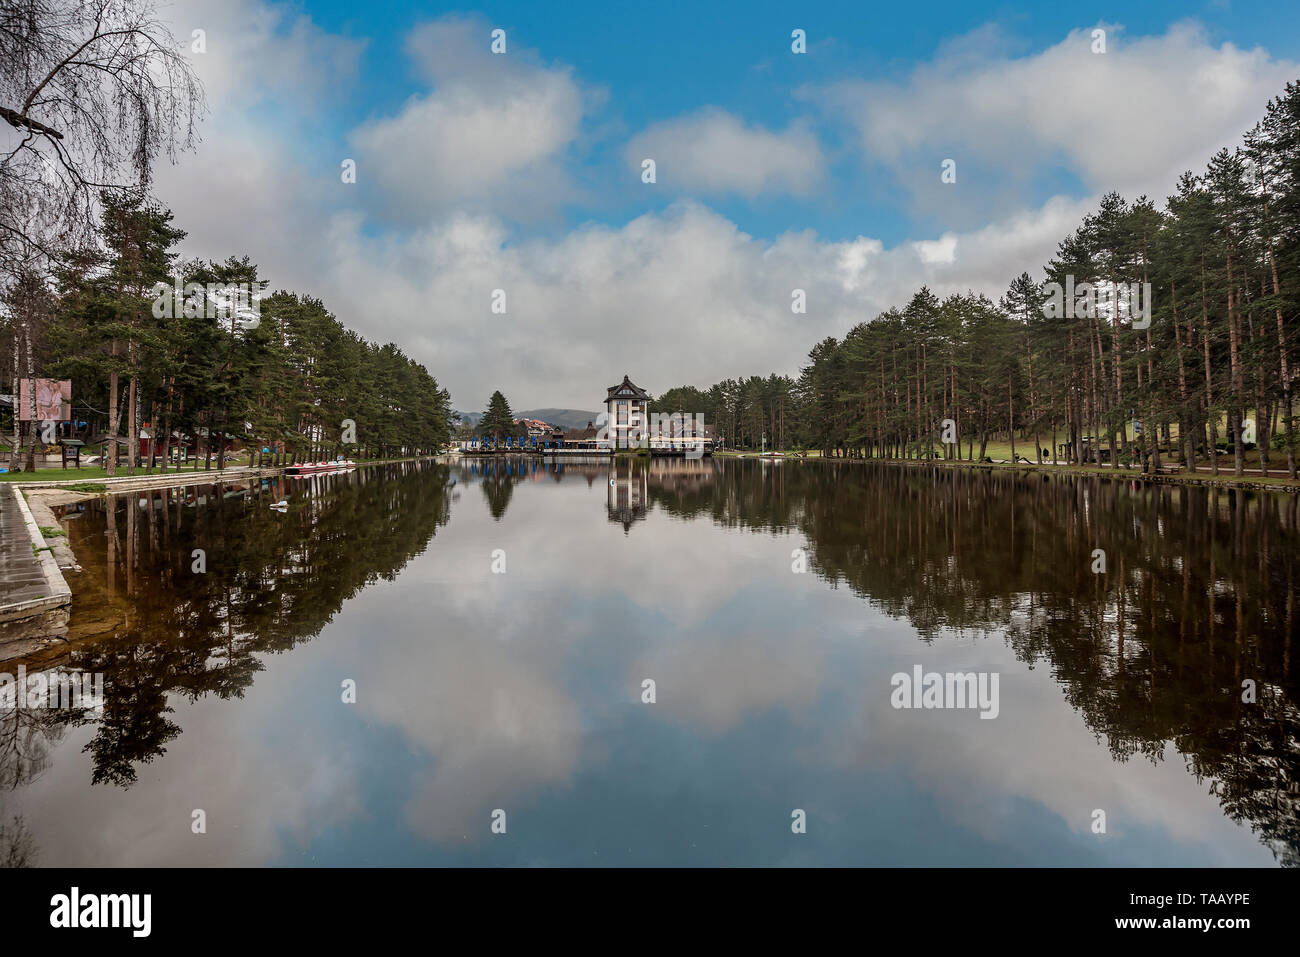 Restaurant on a Beautiful lake in Zlatibor, Serbia - Stock Image